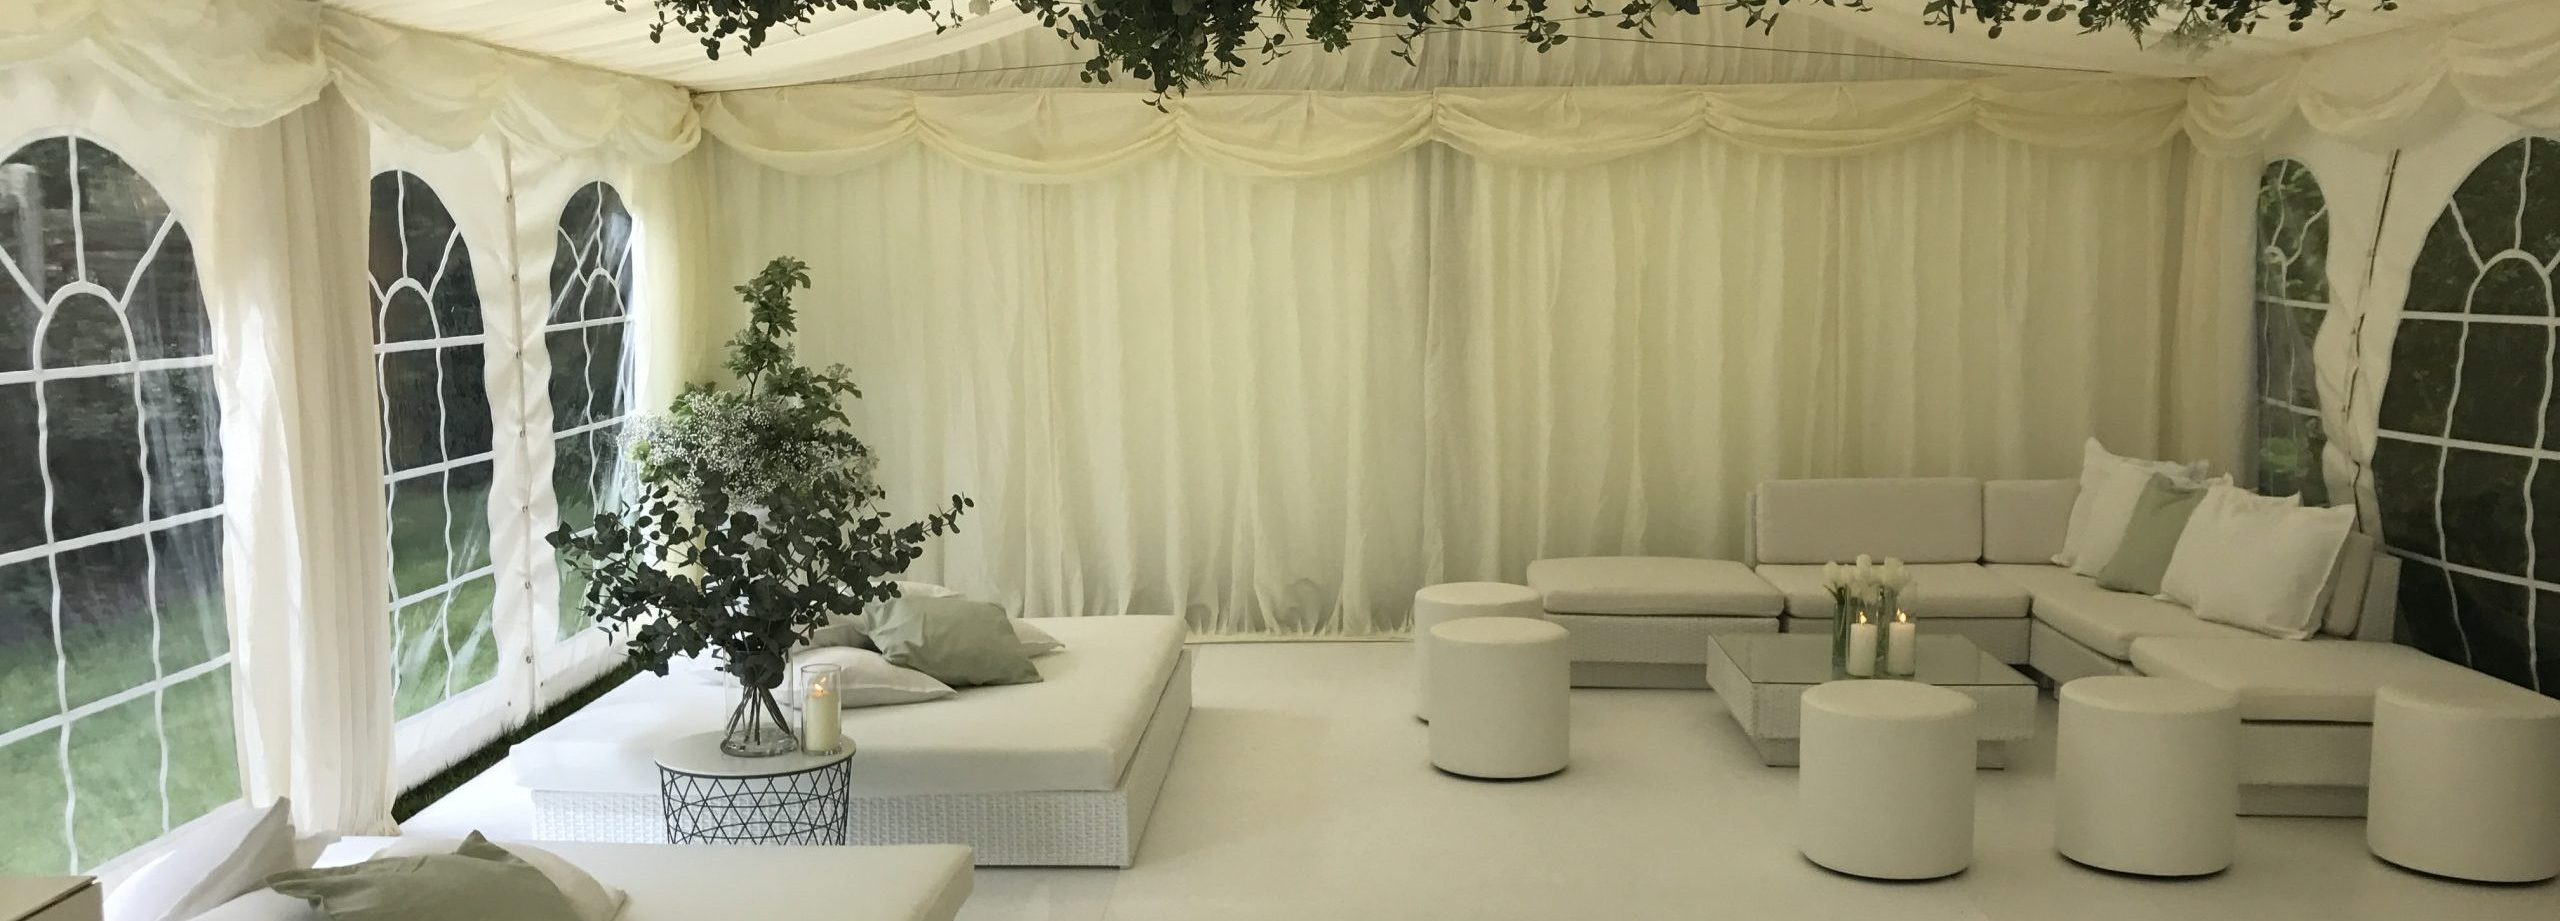 chill out furniture hire: white rattan daybeds